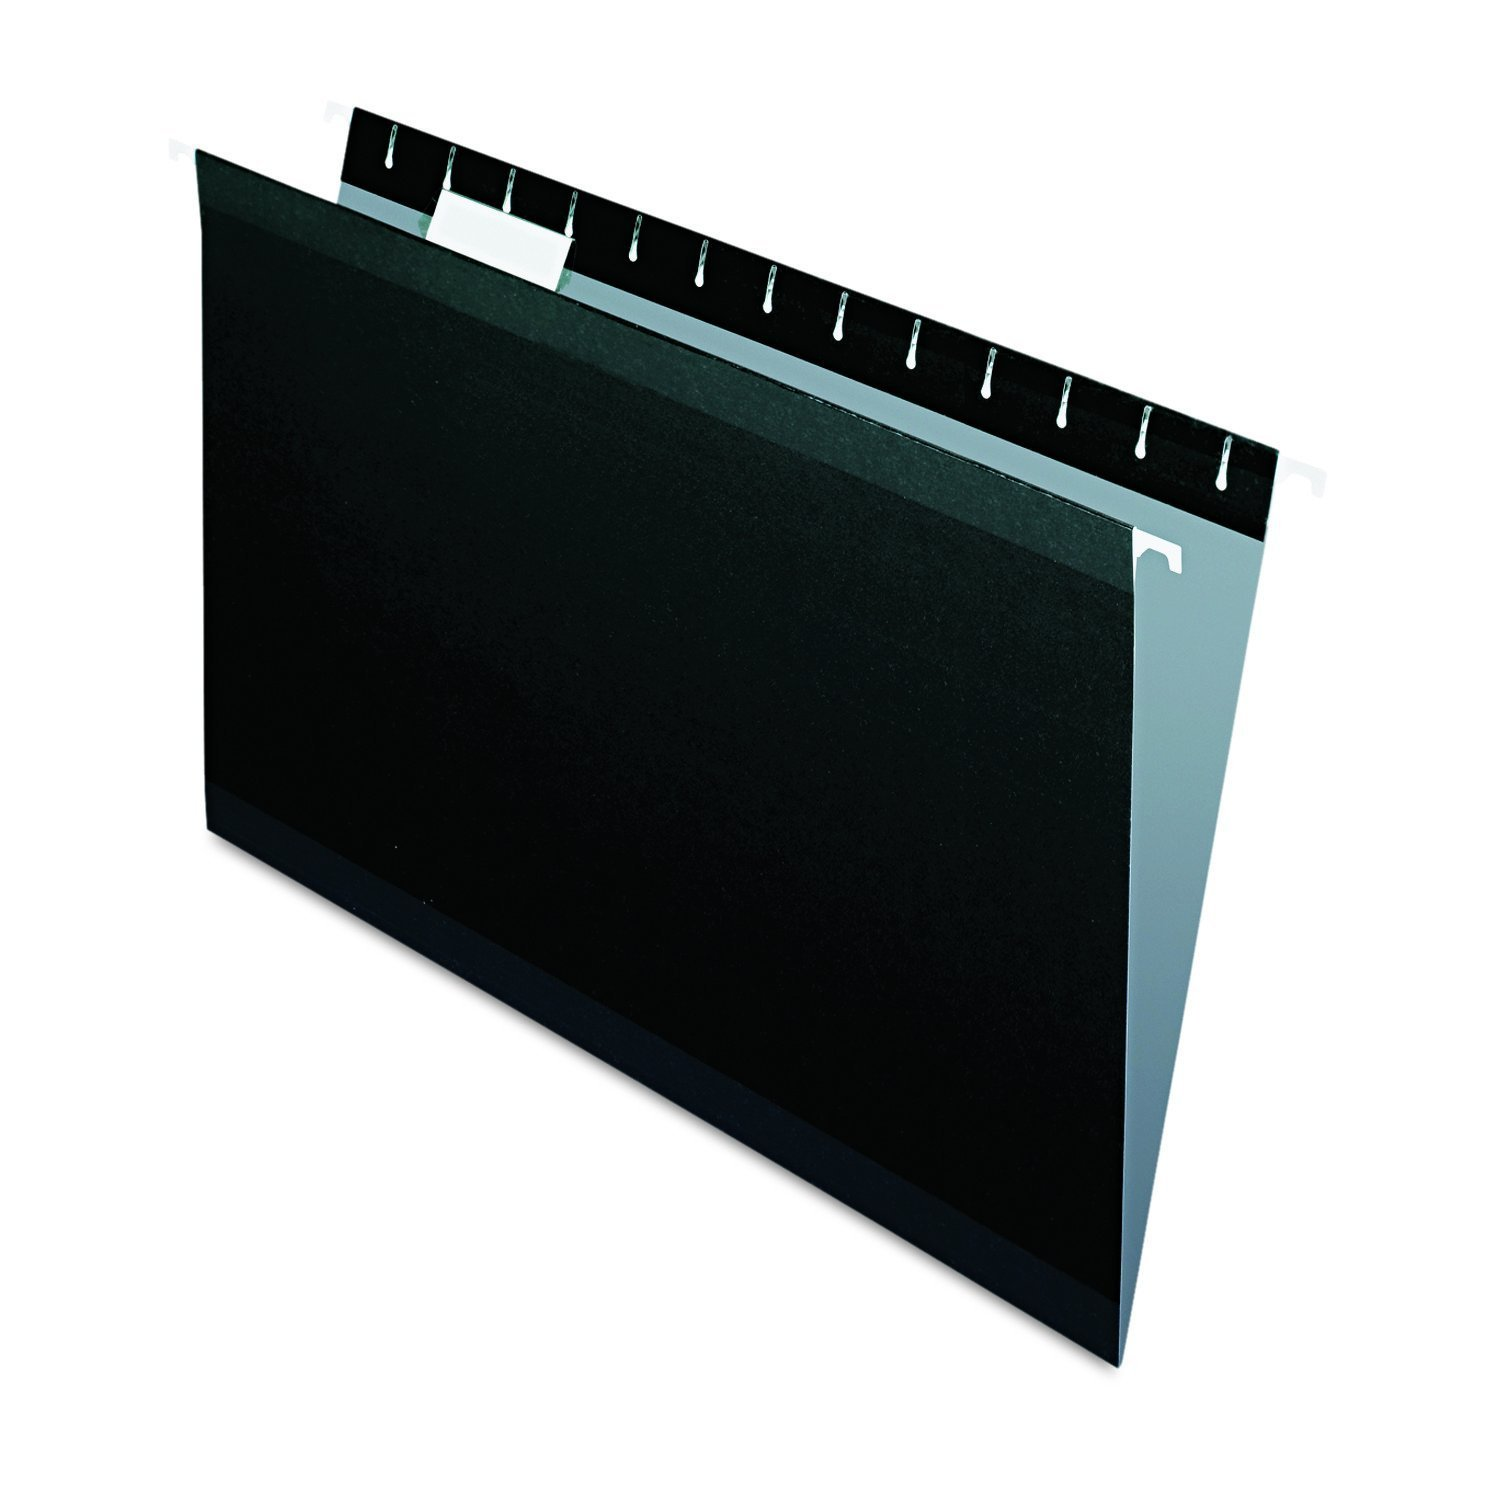 Pendaflex Hanging Folder, Black, 1/5 Tab, Legal, 25 per Box (04153 1/5 BLA) 2-Pack